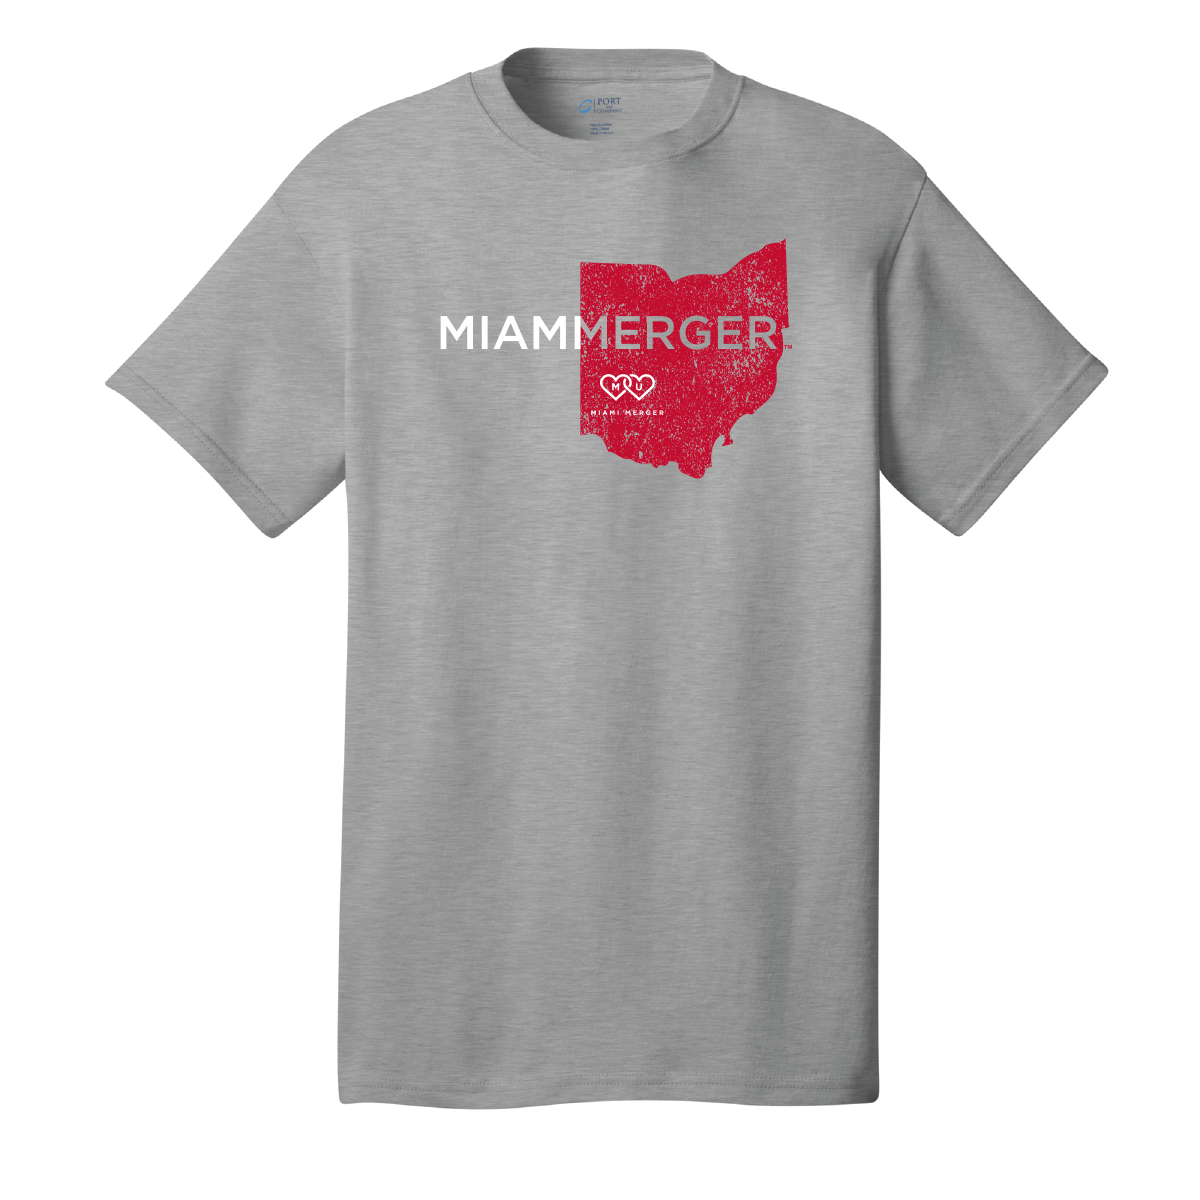 MIAMI UNIVERSITY Redhawks Miami Merger Red Ohio Distressed Crewneck Tee